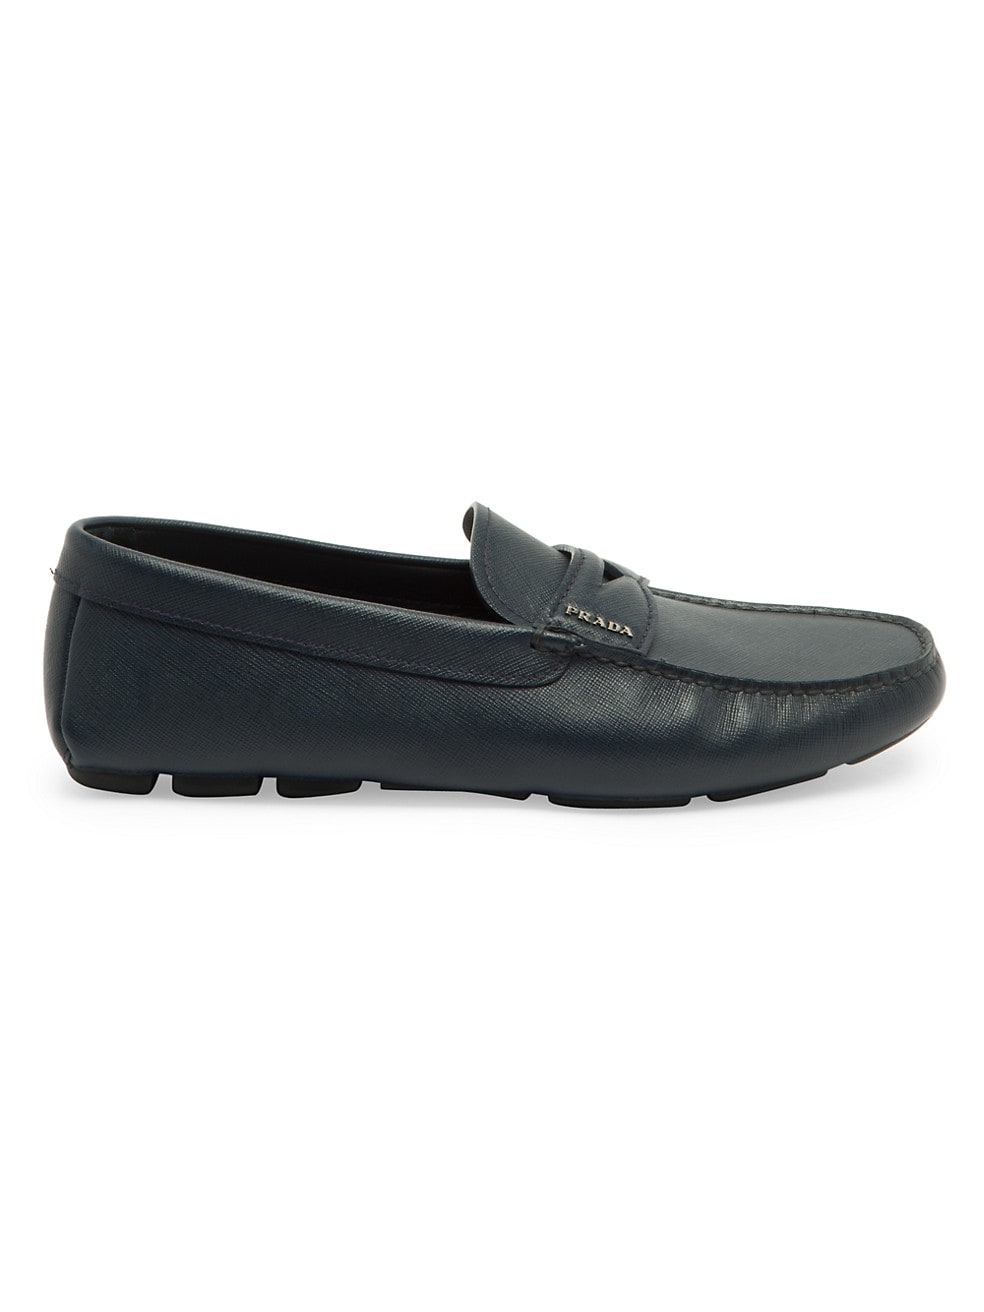 Prada Leather Penny Driving Loafers